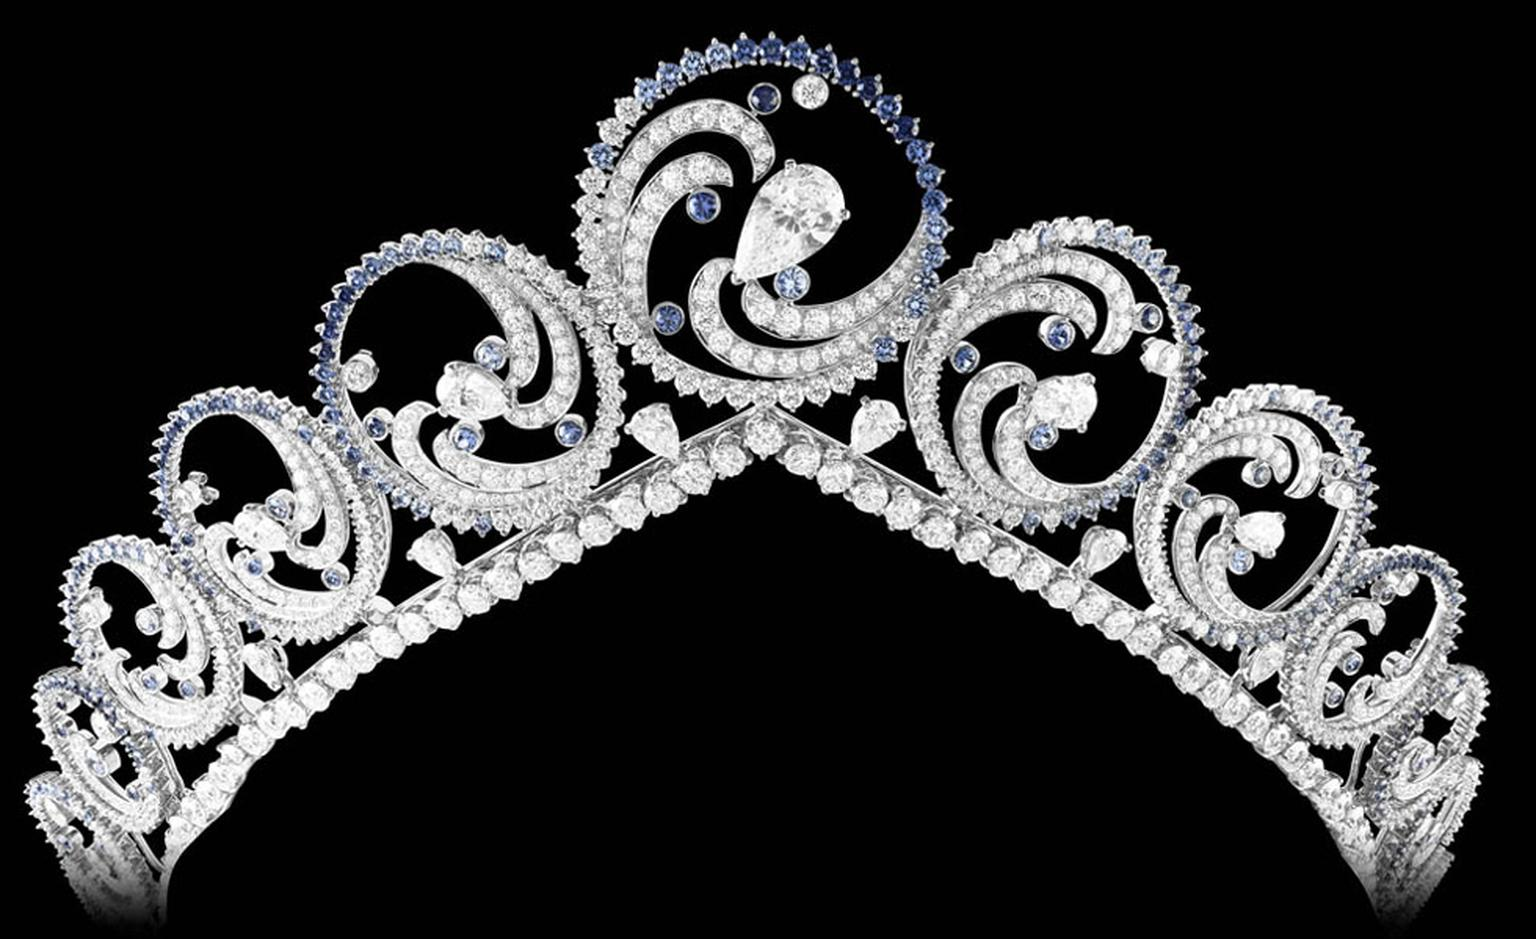 Van Cleef & Arpels Ocean tiara 883 round-cut diamonds, weighing a total of over 44 carats with 10 pear-cut diamonds, weighing a total of over 4 carats. A 4.01 carat pear-cut diamond and 359 round-cut sapphires for over a total of 18 carats, in a...